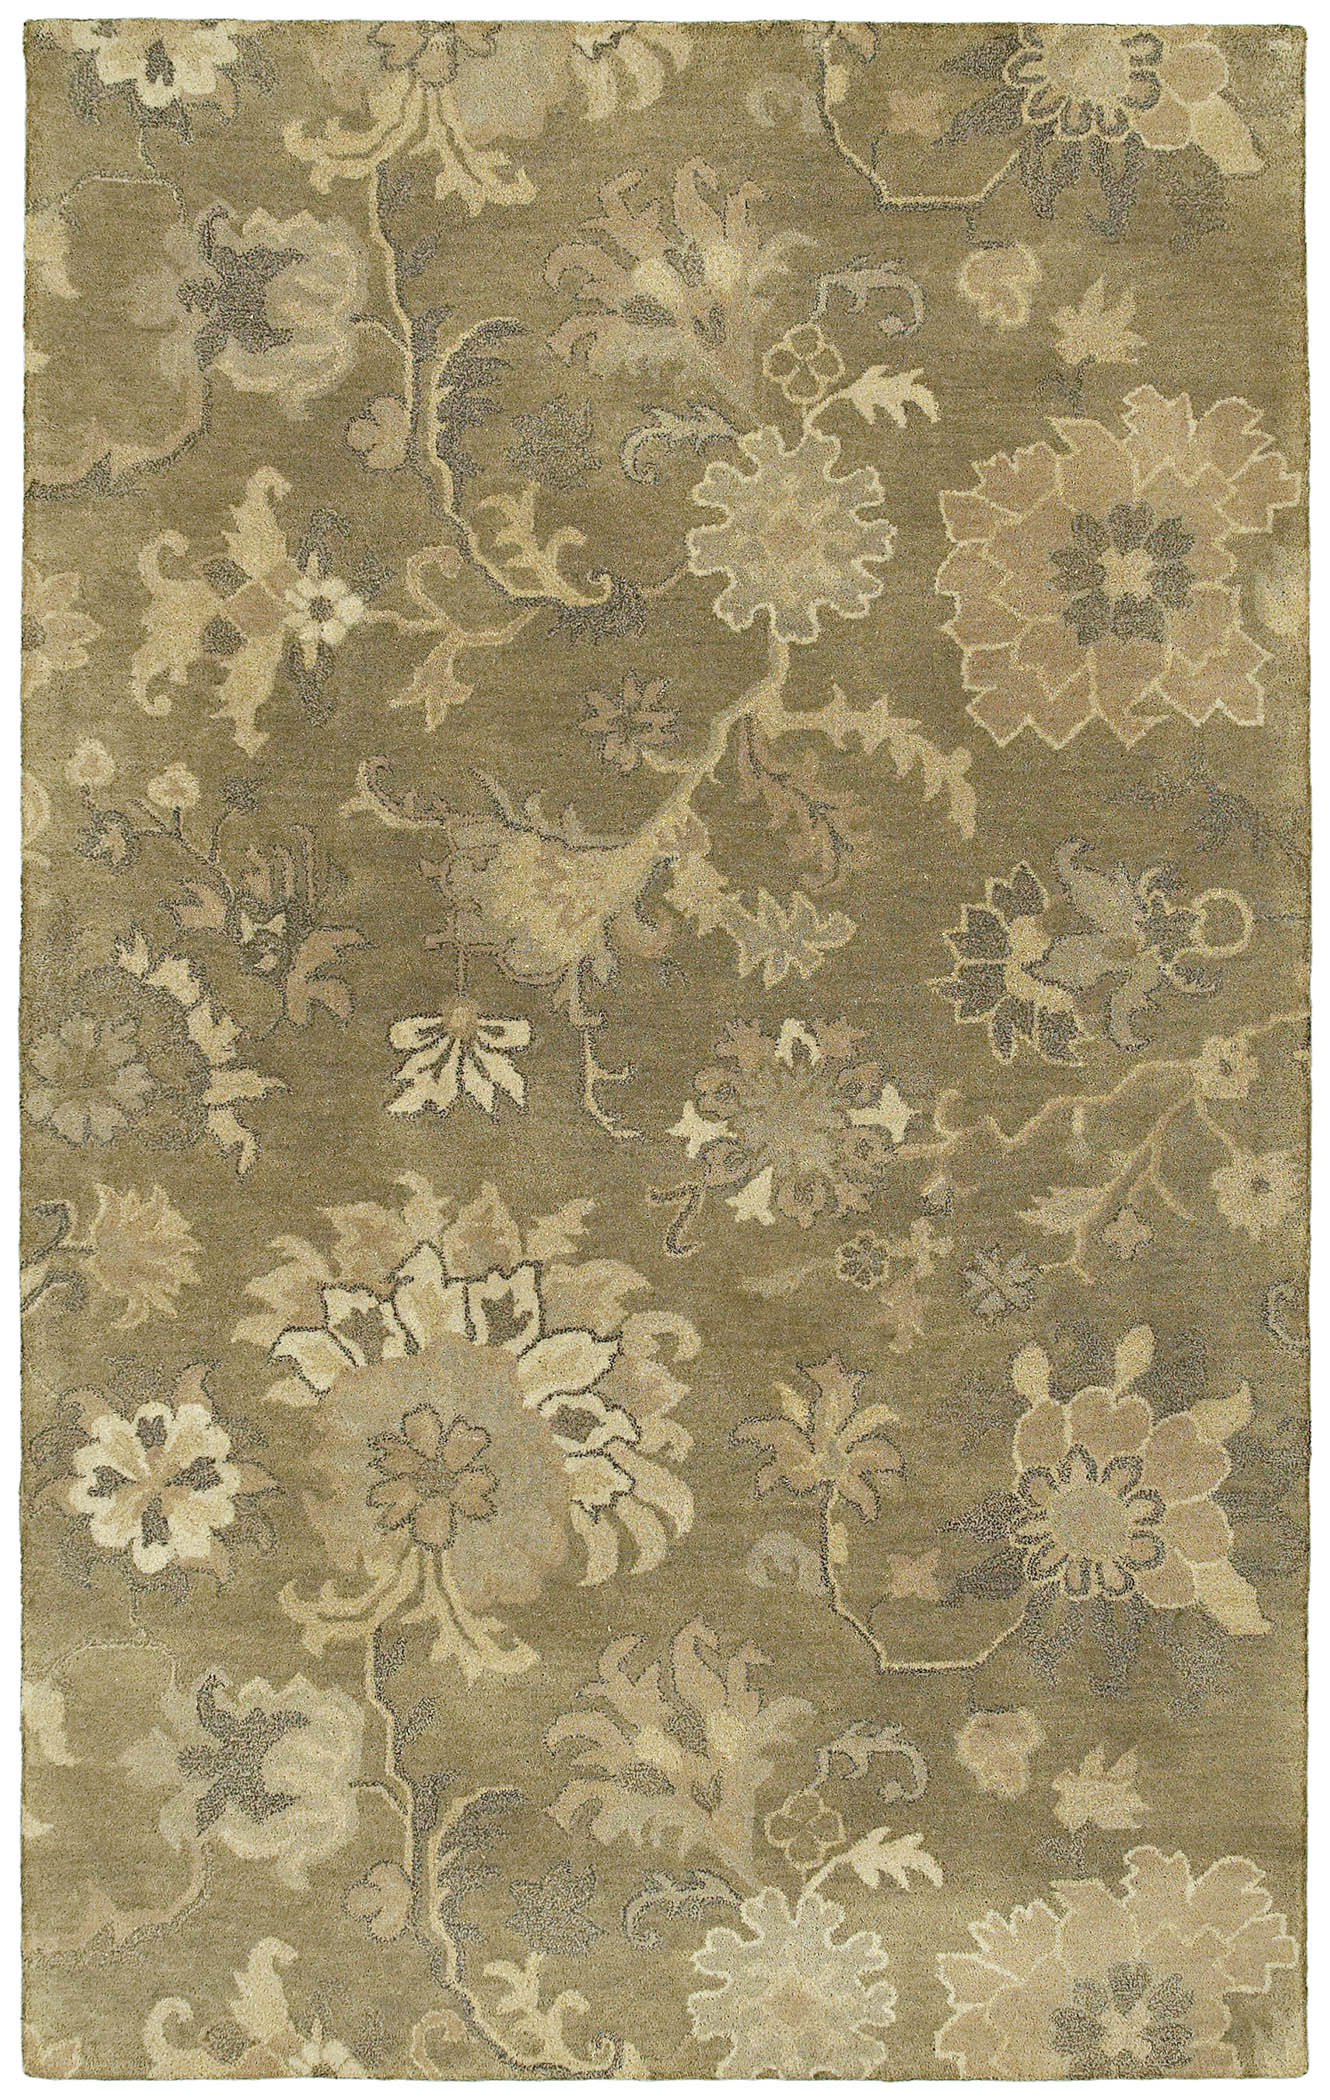 Magi 7201 Rose of Lebanon 59 Sage Rug by Kaleen